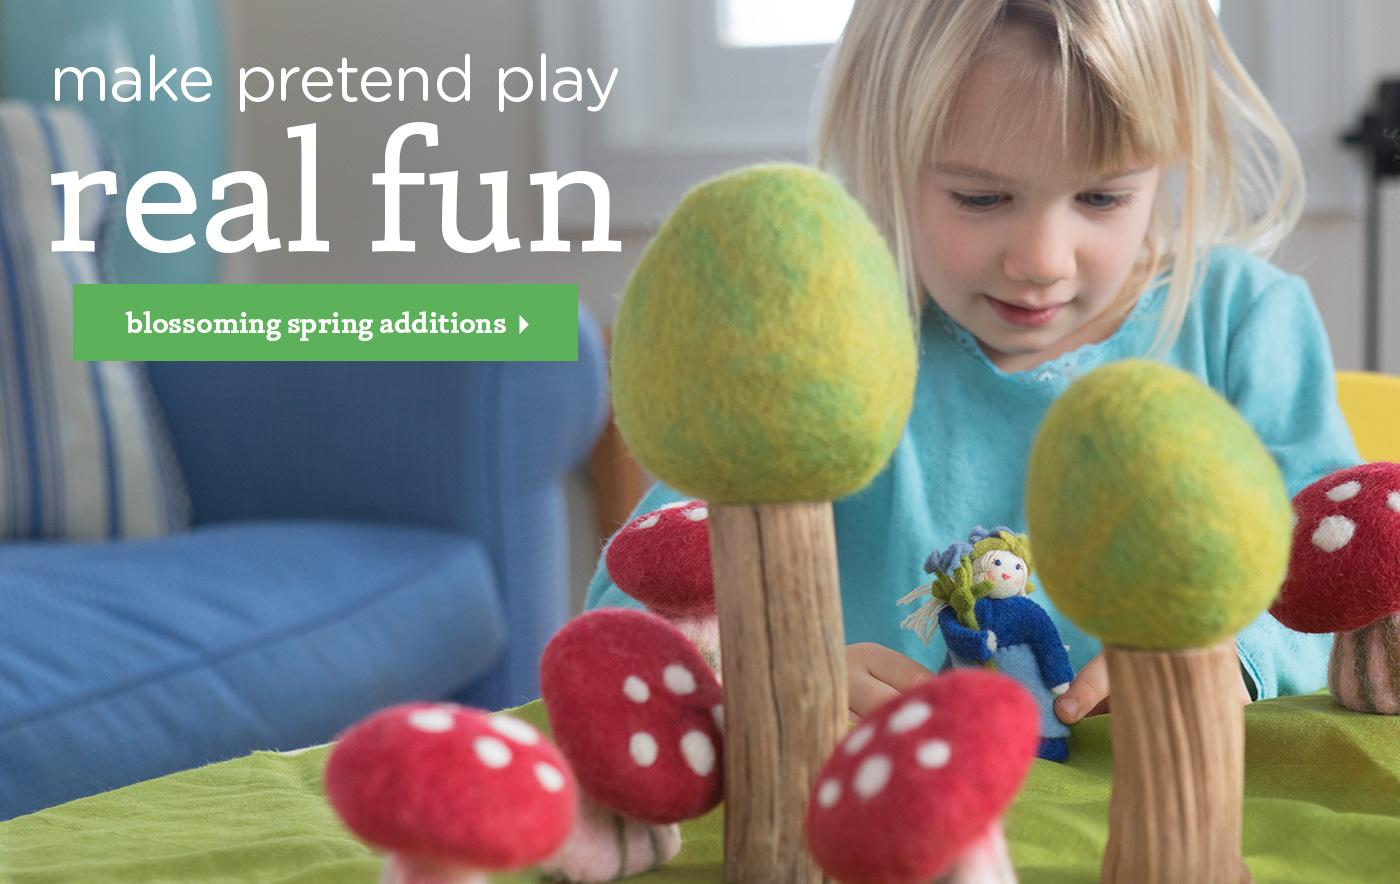 make your pretend play real fun